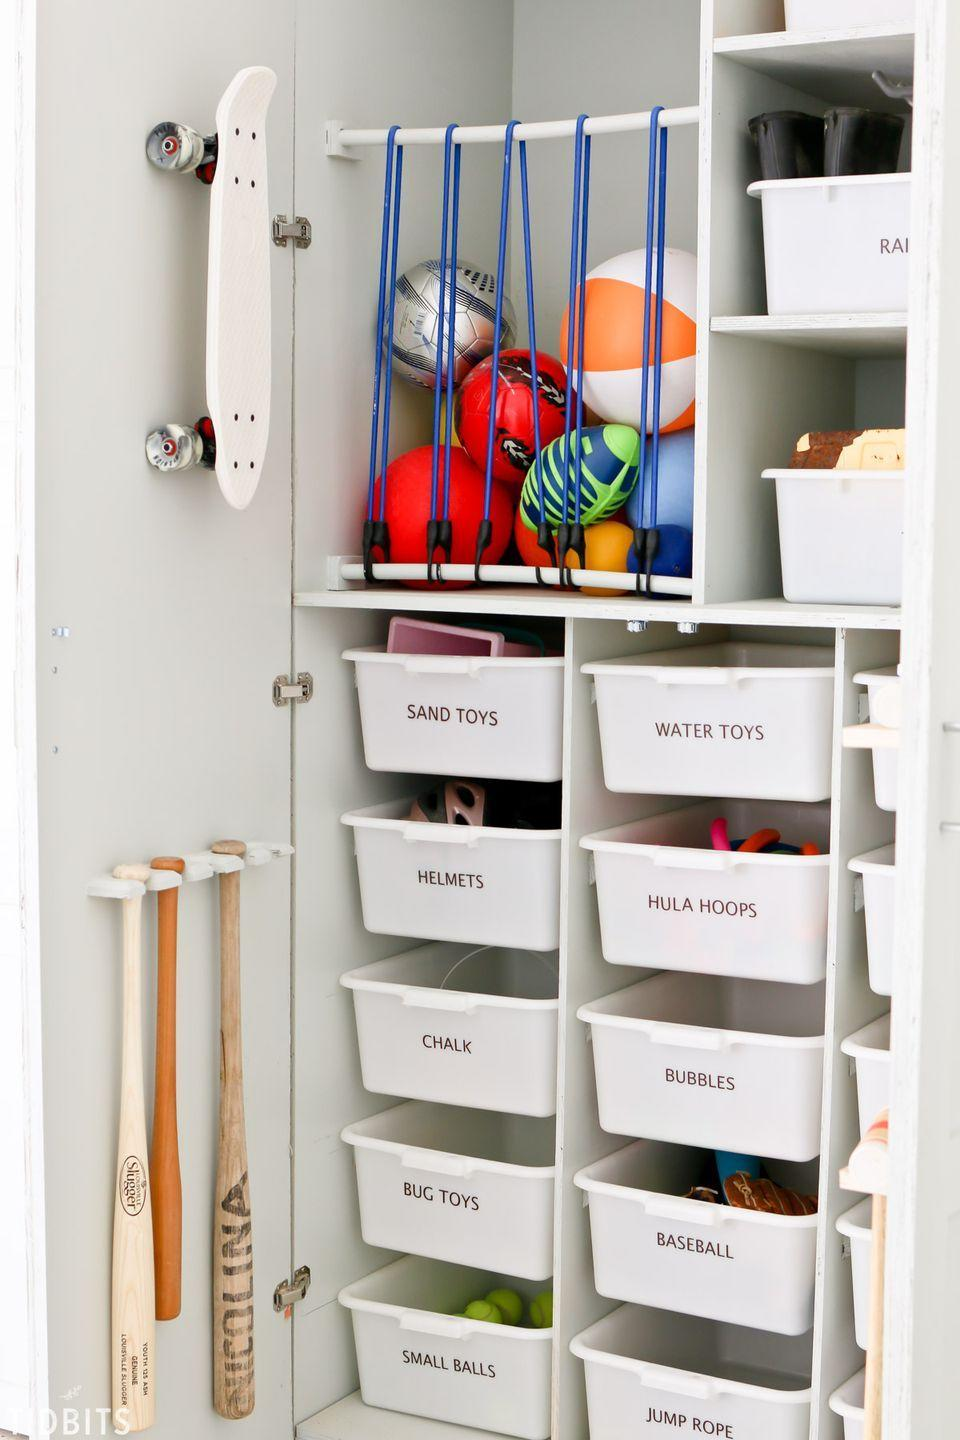 """<p>Take the sports equipment outside in its very own cabinet with bins for balls, hooks for bats and rackets, and drawers for chalk, knee pads, and water toys.</p><p><strong>See more at <a href=""""https://www.tidbits-cami.com/garage-toy-storage/"""" rel=""""nofollow noopener"""" target=""""_blank"""" data-ylk=""""slk:Tidbits-Cami"""" class=""""link rapid-noclick-resp"""">Tidbits-Cami</a>.</strong></p><p><strong><a class=""""link rapid-noclick-resp"""" href=""""https://www.amazon.com/s?k=plastic+storage+bins&ref=nb_sb_noss_2&tag=syn-yahoo-20&ascsubtag=%5Bartid%7C10063.g.36014277%5Bsrc%7Cyahoo-us"""" rel=""""nofollow noopener"""" target=""""_blank"""" data-ylk=""""slk:SHOP PLASTIC STORAGE BINS"""">SHOP PLASTIC STORAGE BINS</a><br></strong></p>"""